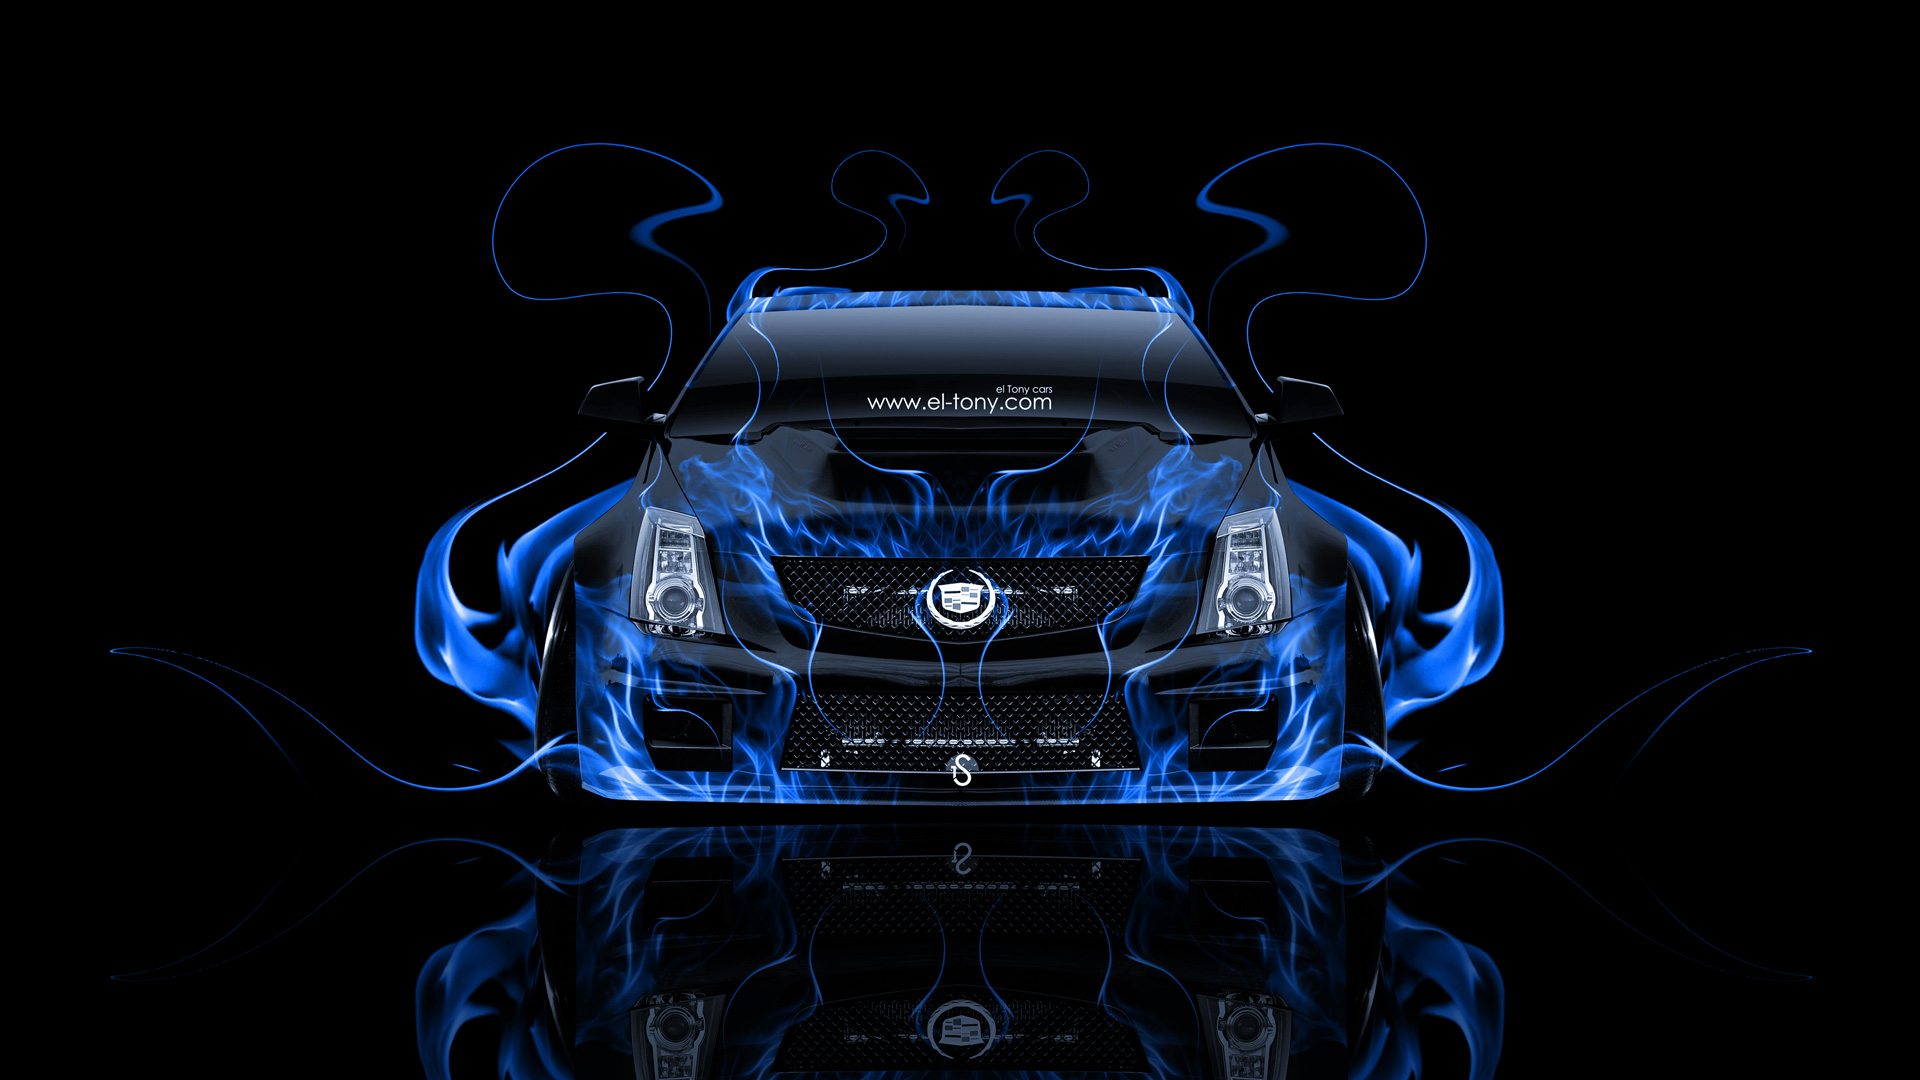 Black And Blue Cars 4k Wallpaper Cadillac Cts V Hennessey Tuning Front Fire Car 2014 El Tony